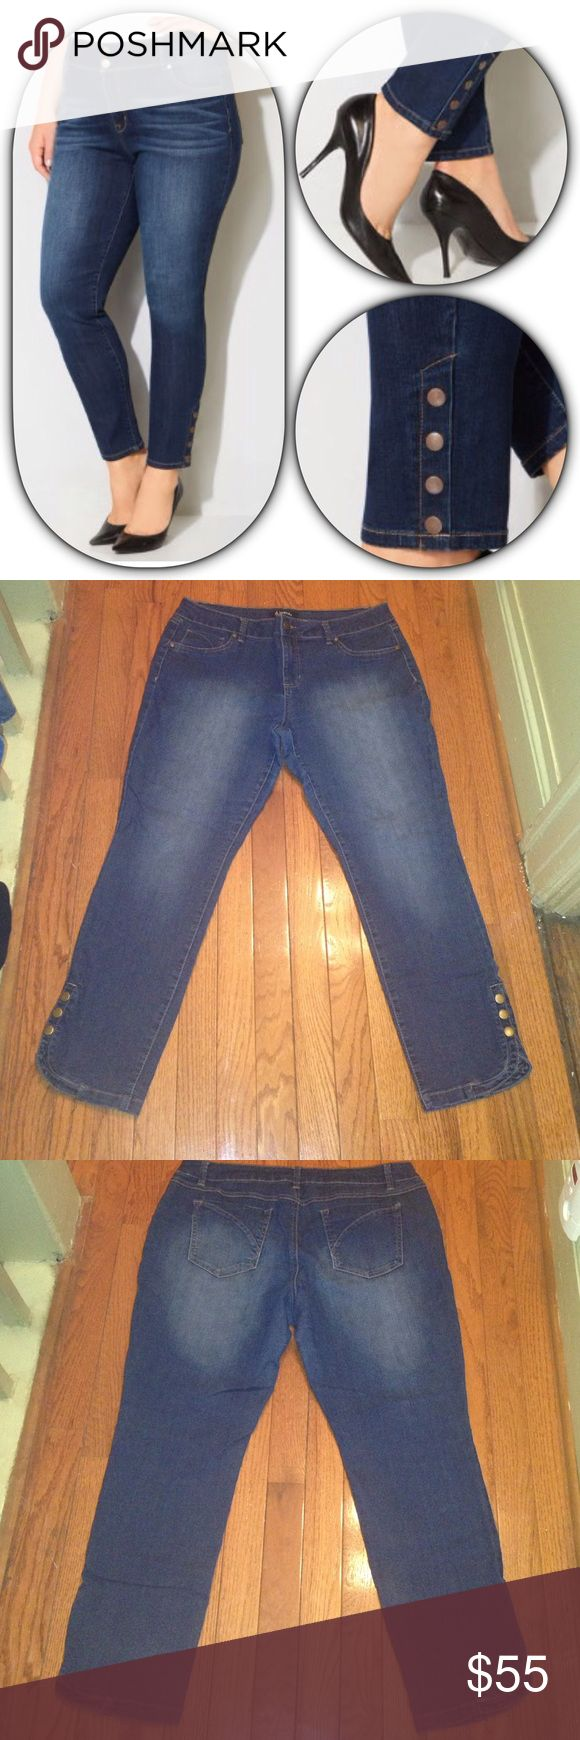 D. Jeans Snap Ankle Medium Wash Jegging Sz 14 D. Jeans Snap Ankle Medium Wash Jegging Sz 14. Ankle length. Faux front pockets. Belt loops. Two back pockets. Three snap ankle buttons on side of leg at hem. Front button zipper fly. Materials: 79% cotton/ 19% polyester/ 2% spandex. Measurements: Waist Circumference - 36 inches/ Hip Circumference - 43 inches/ Thigh Circumference - 24 inches/ Inseam Length - 26 inches Avenue Jeans Skinny